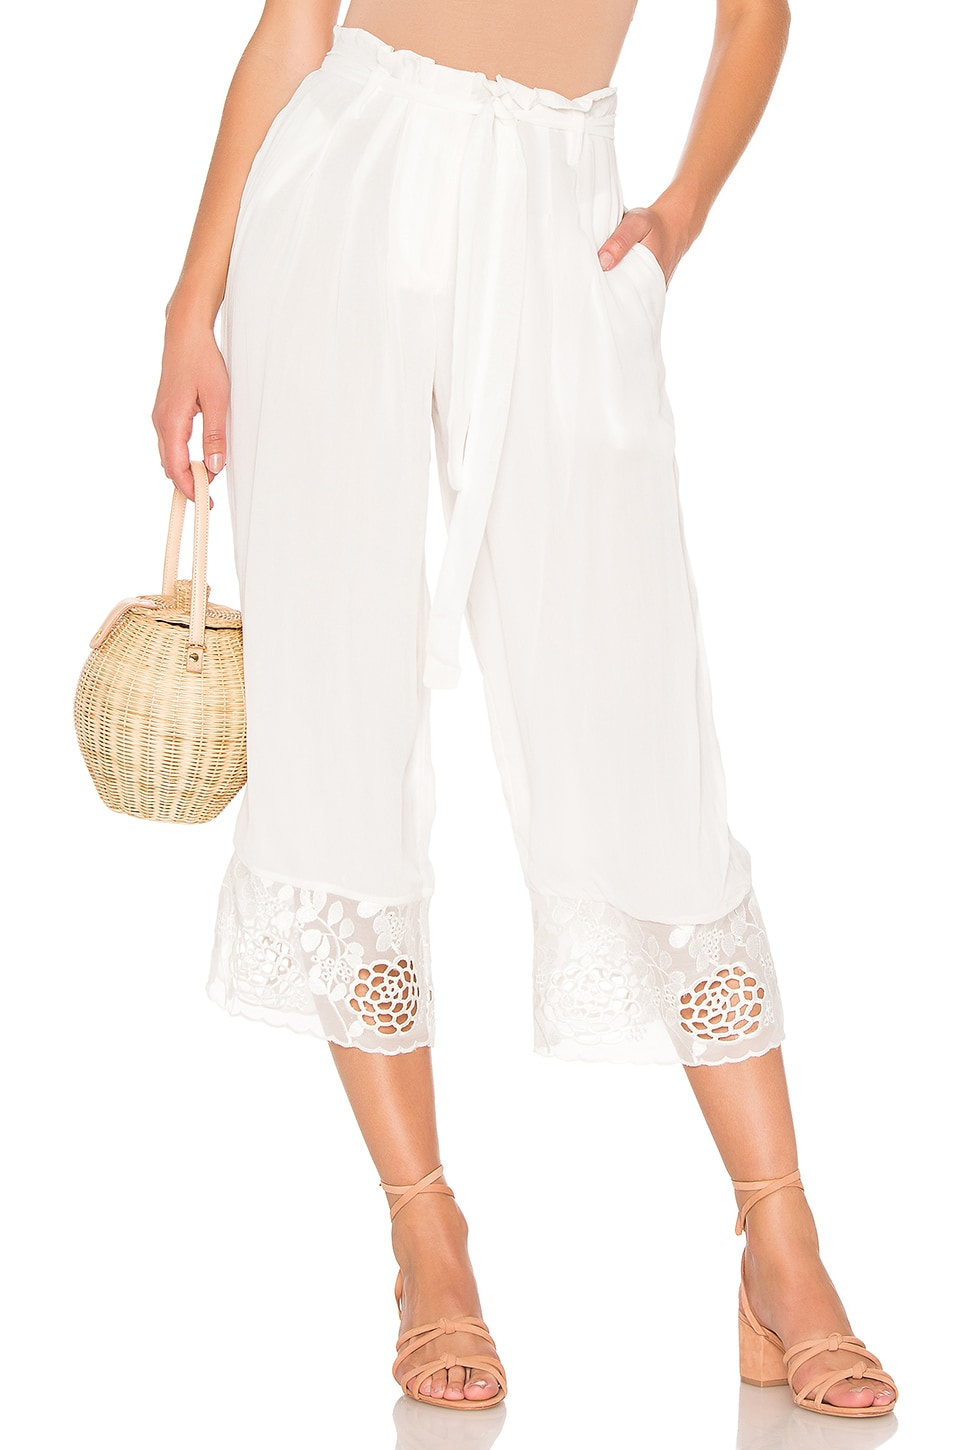 House of Harlow 1960 x REVOLVE Dewi Pant in Ivory